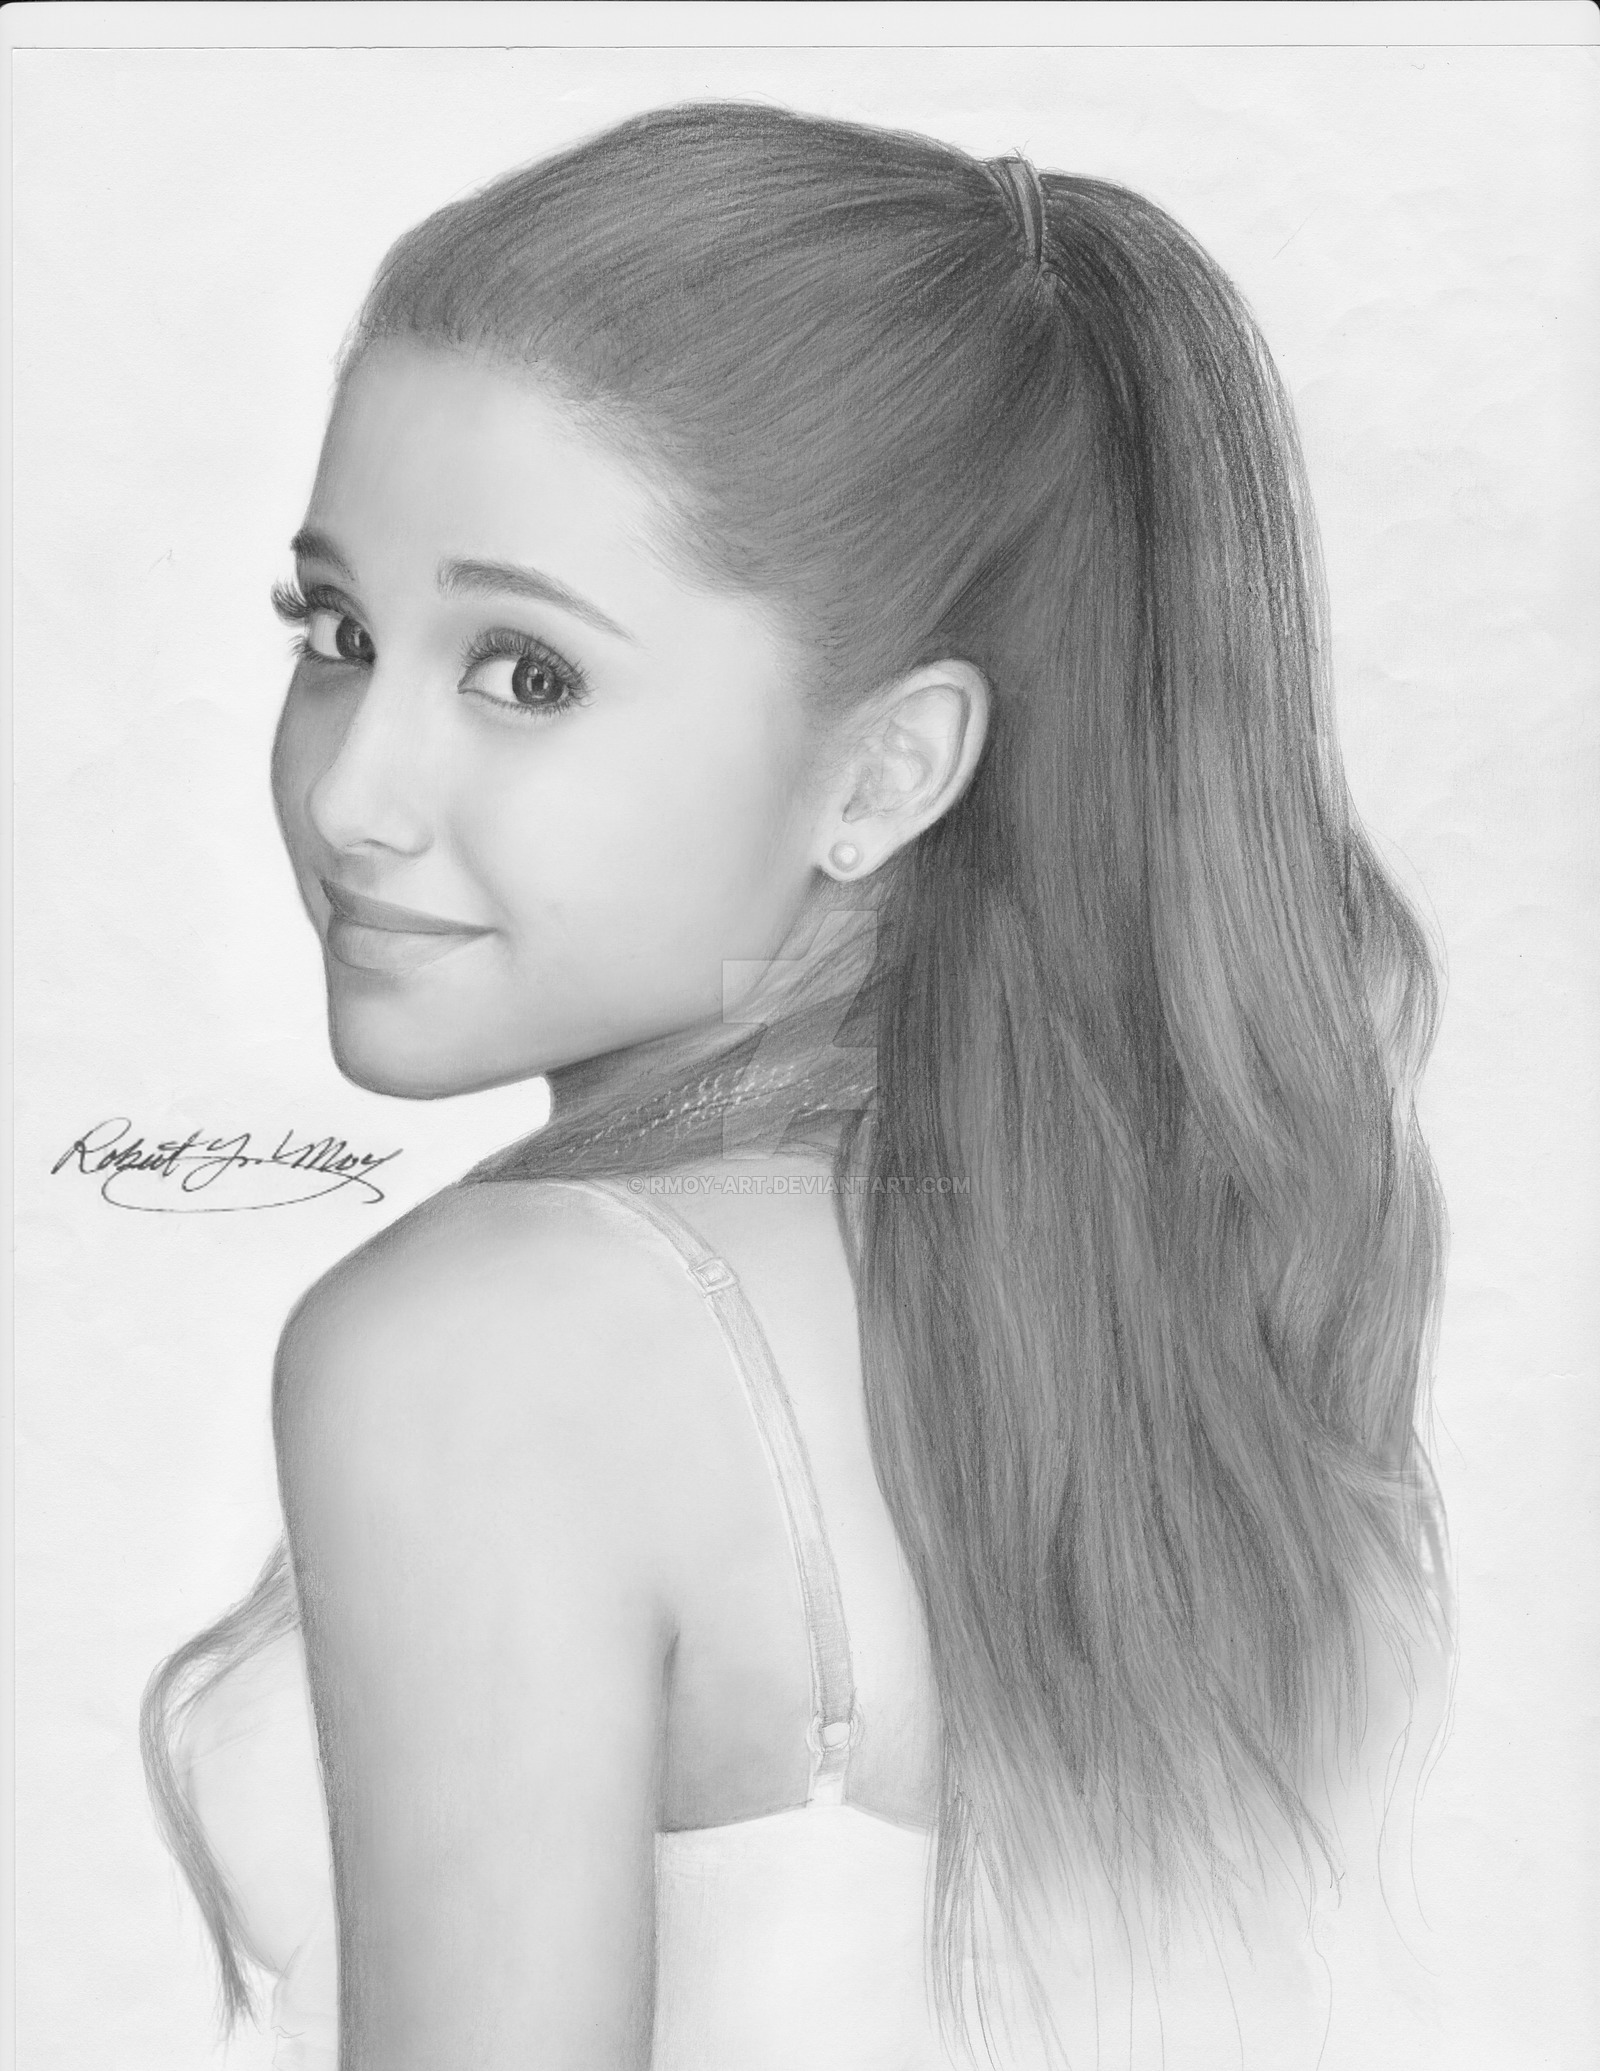 Drawn portrait ariana grande DeviantArt Art  portrait by